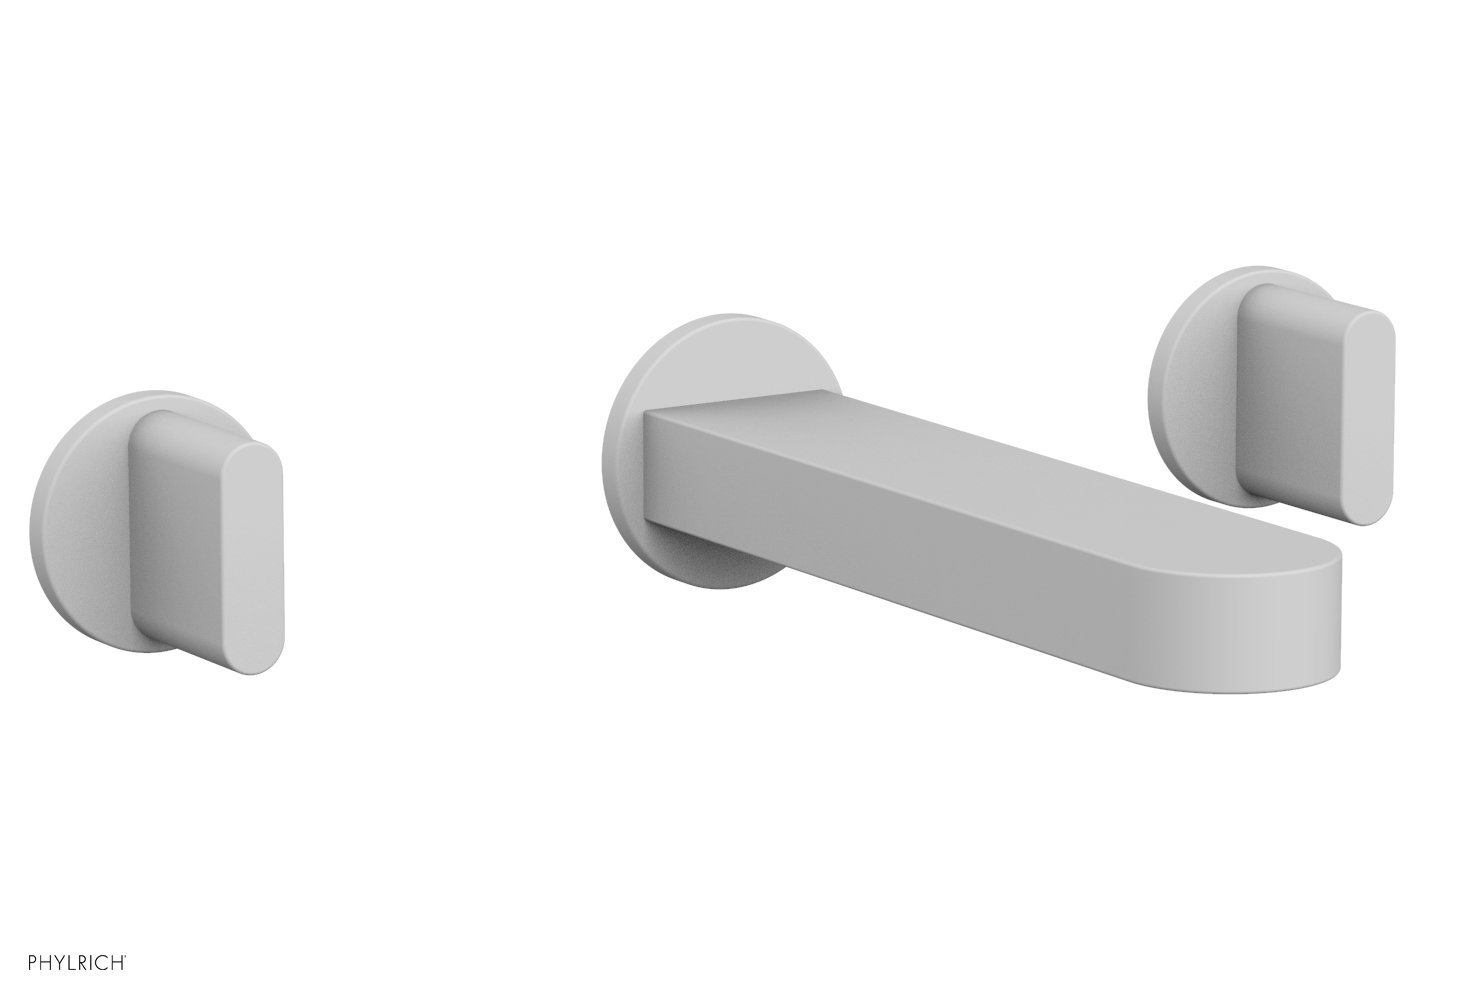 Phylrich 183-11-050 ROND Wall Lavatory Set - Blade Handles - Satin White